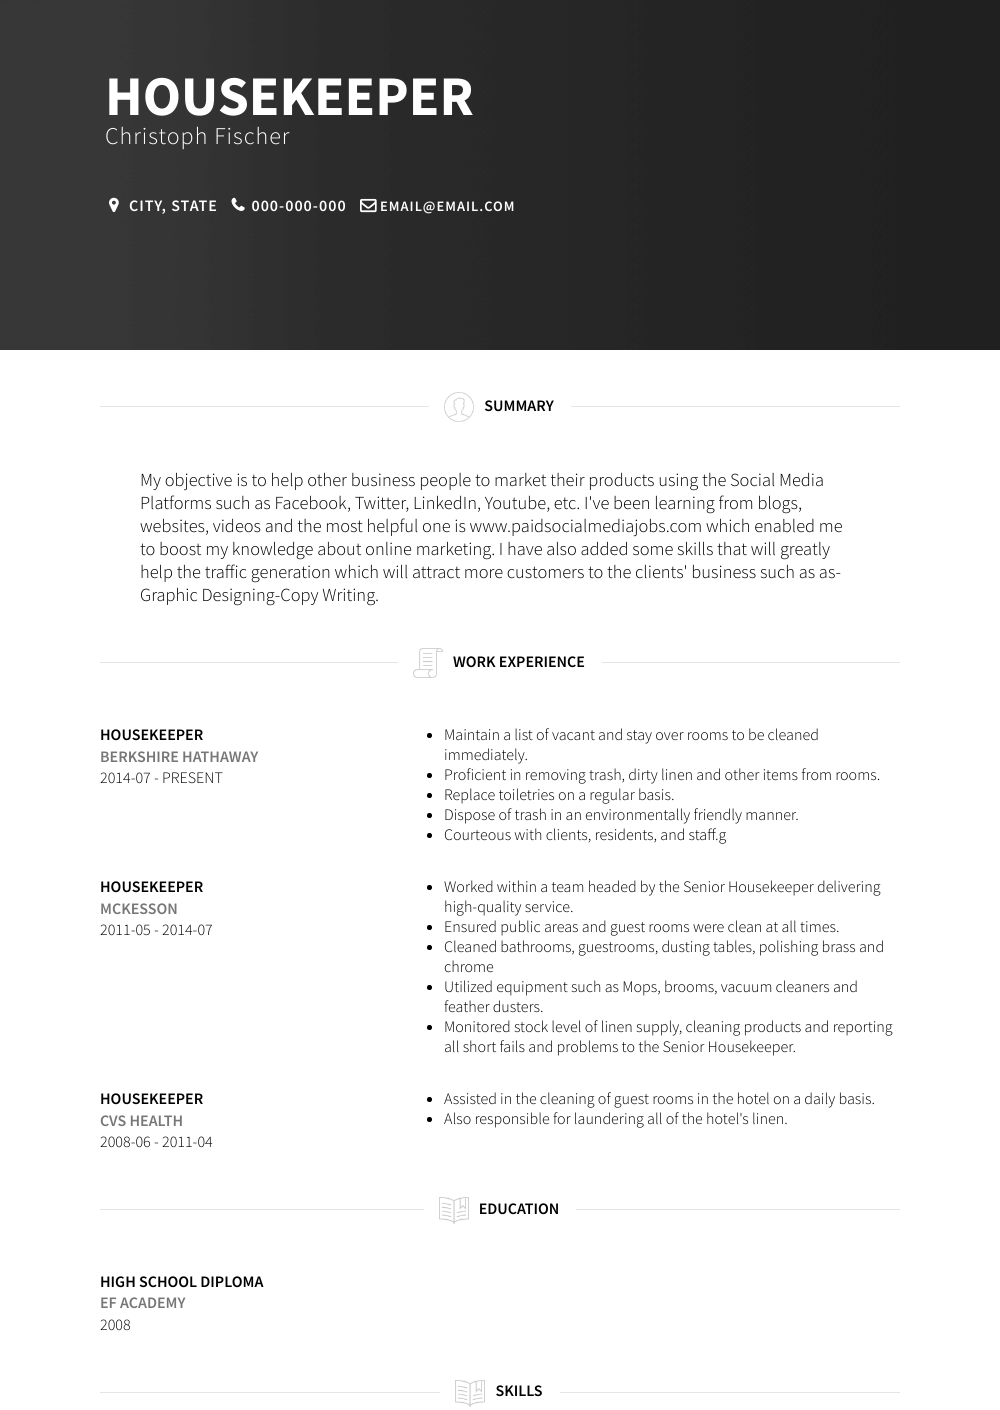 Housekeeper Resume Sample and Template